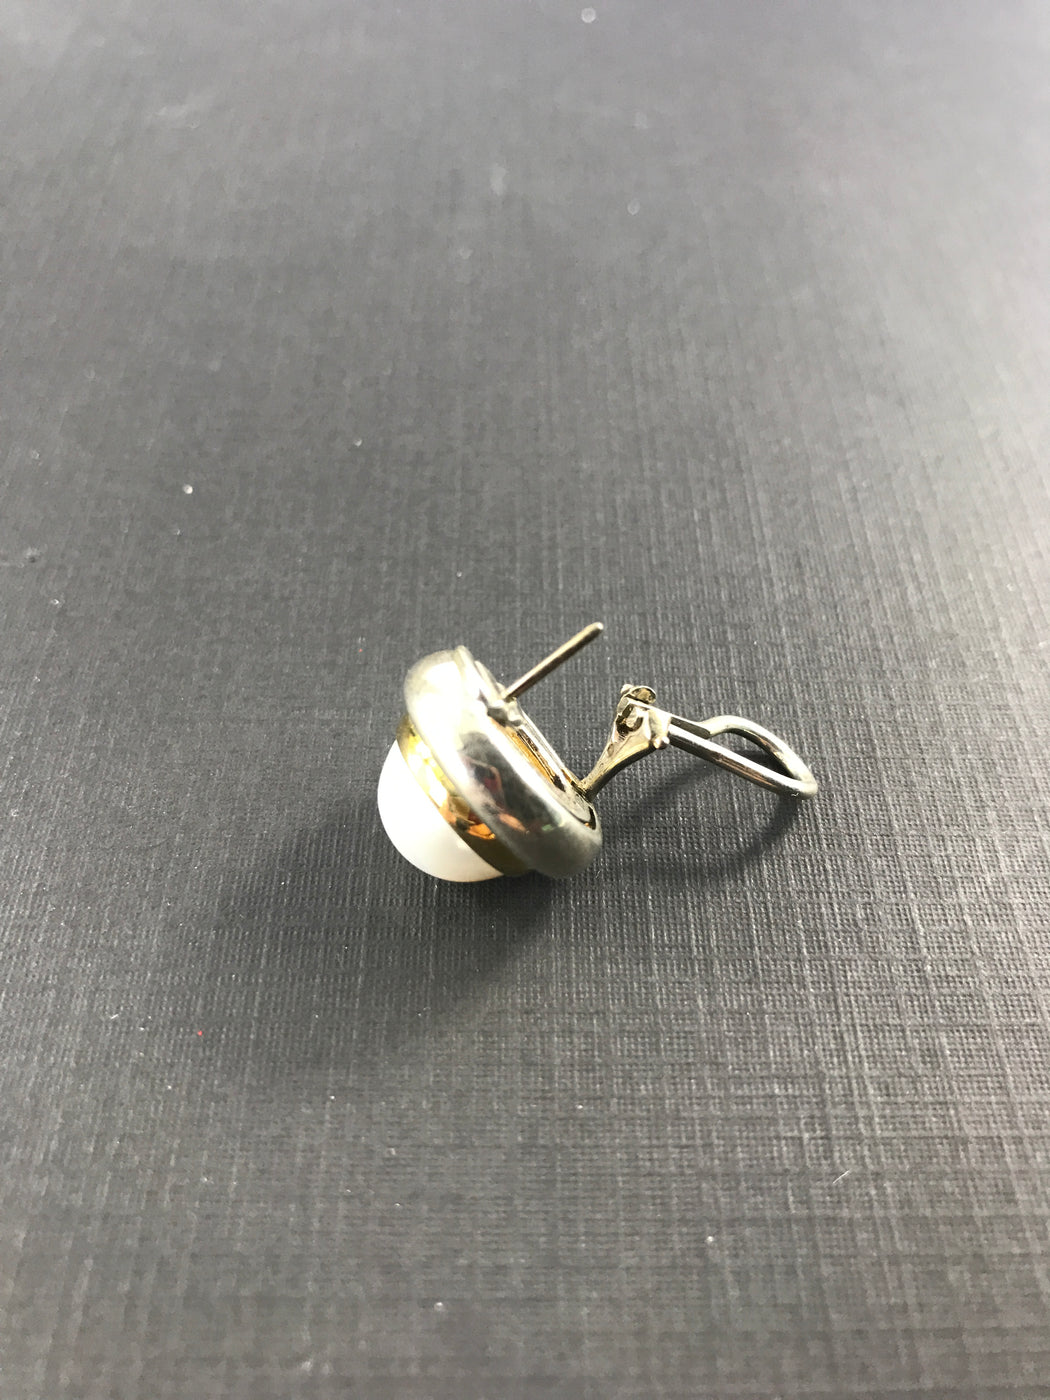 90764565e ... Tiffany & Co Sterling Silver 18K Gold Mabe Pearl Paloma Picasso Earrings  c.1980's ...